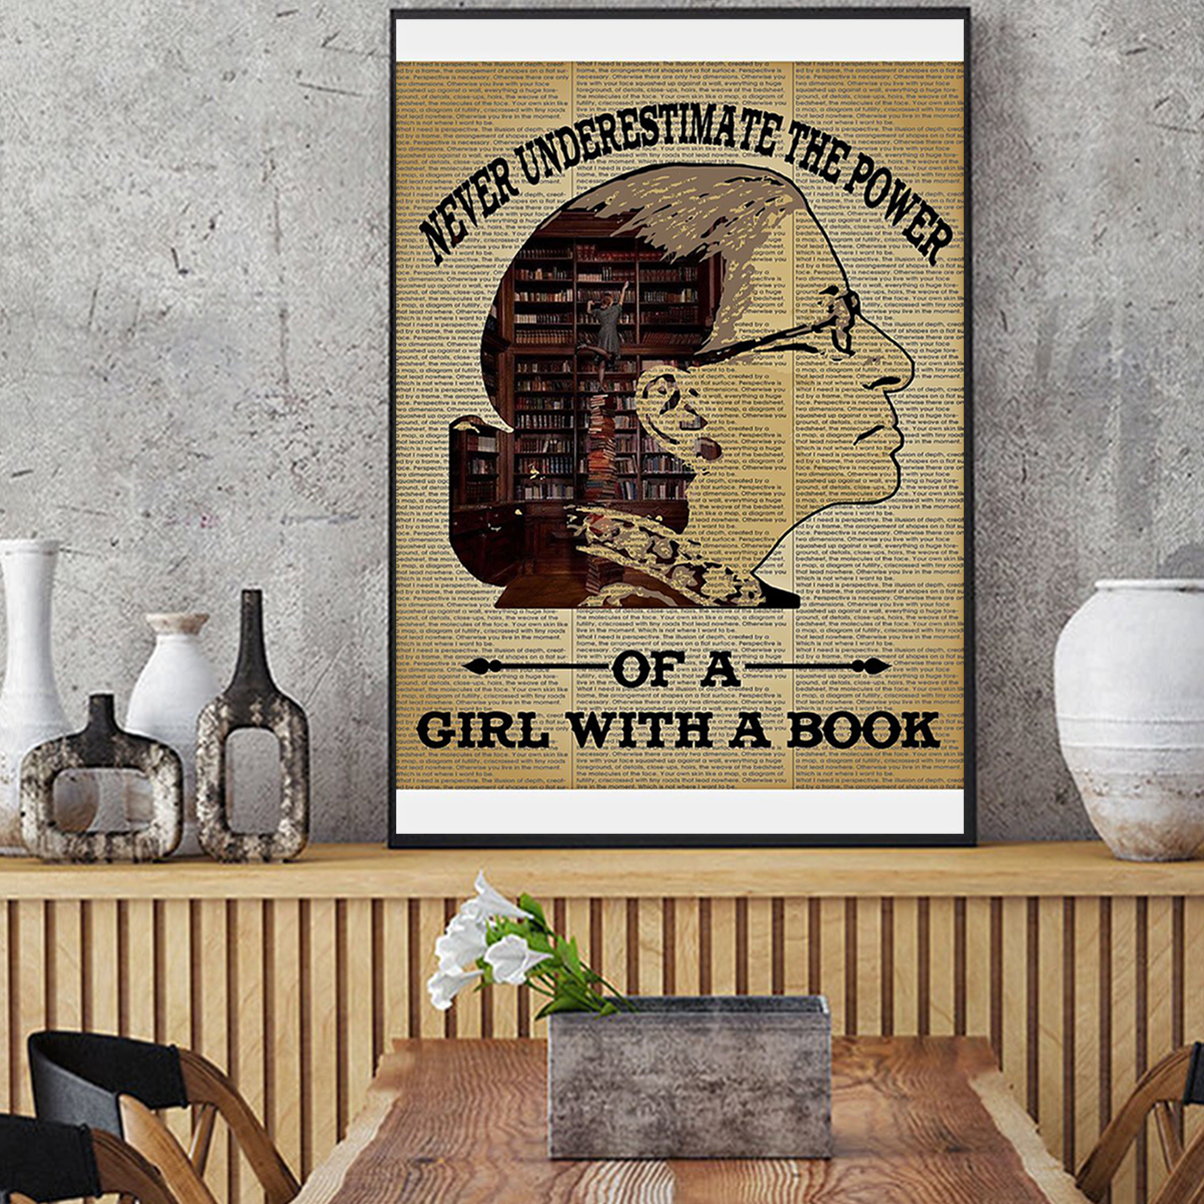 Ruth bader ginsburg never underestimate the power of a girl with a book poster A1